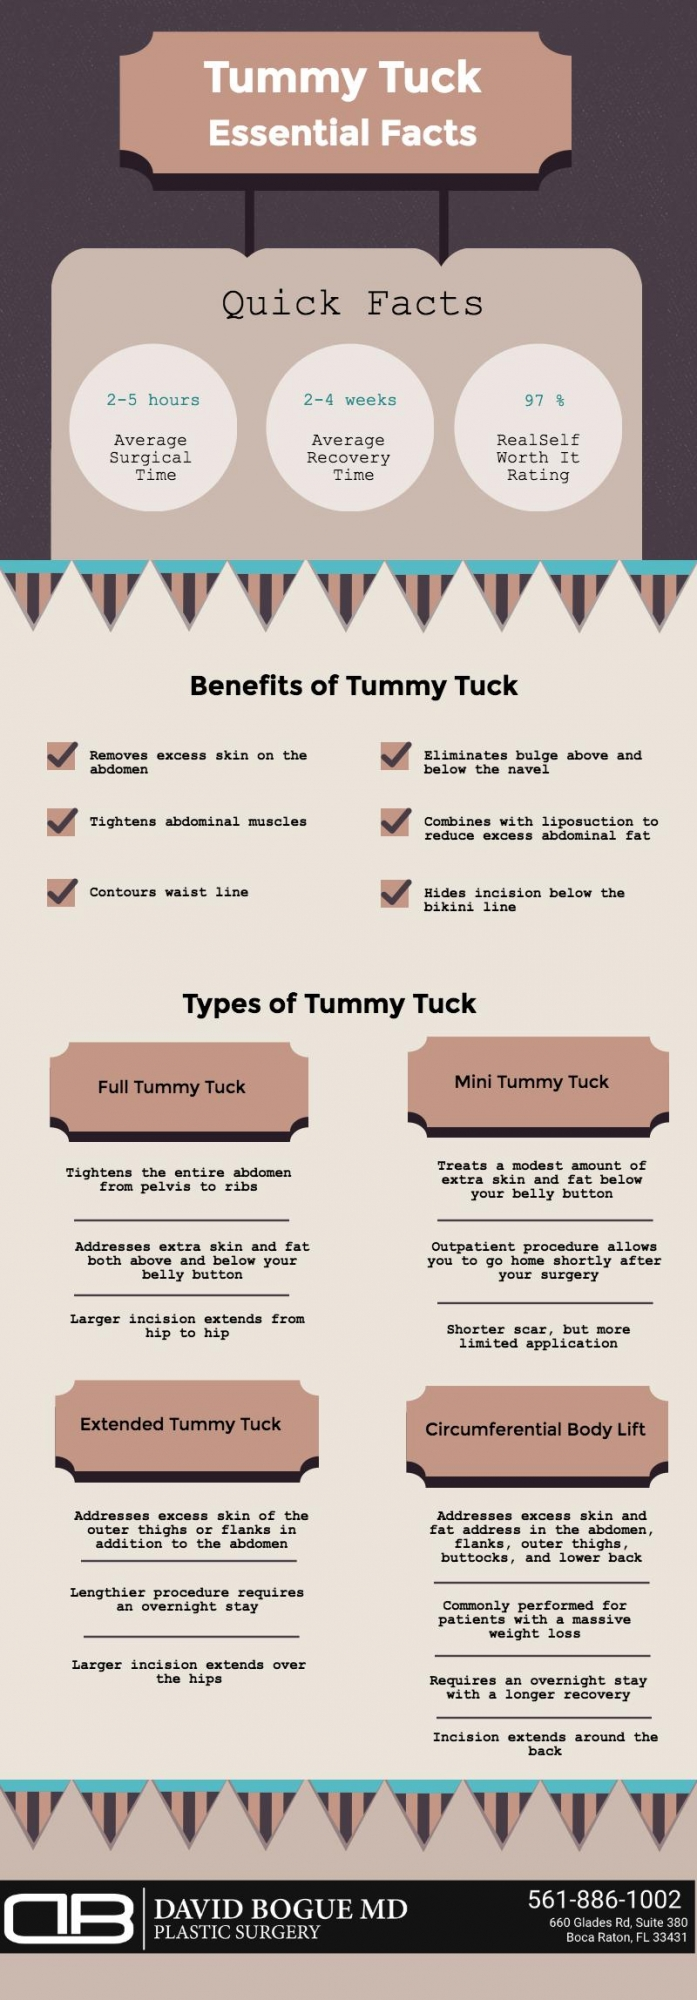 Tummy Tuck Essential Facts